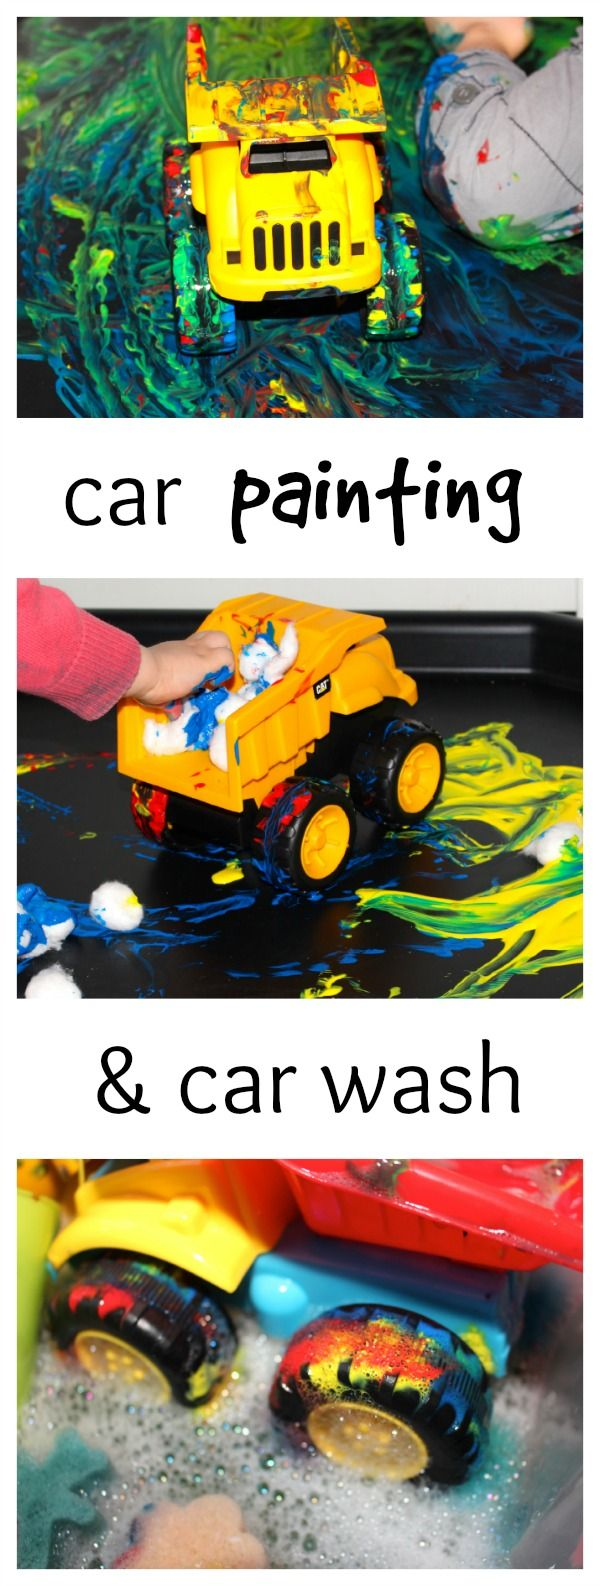 Messy little monster: Painting with toy cars- process art for toddlers and preschoolers